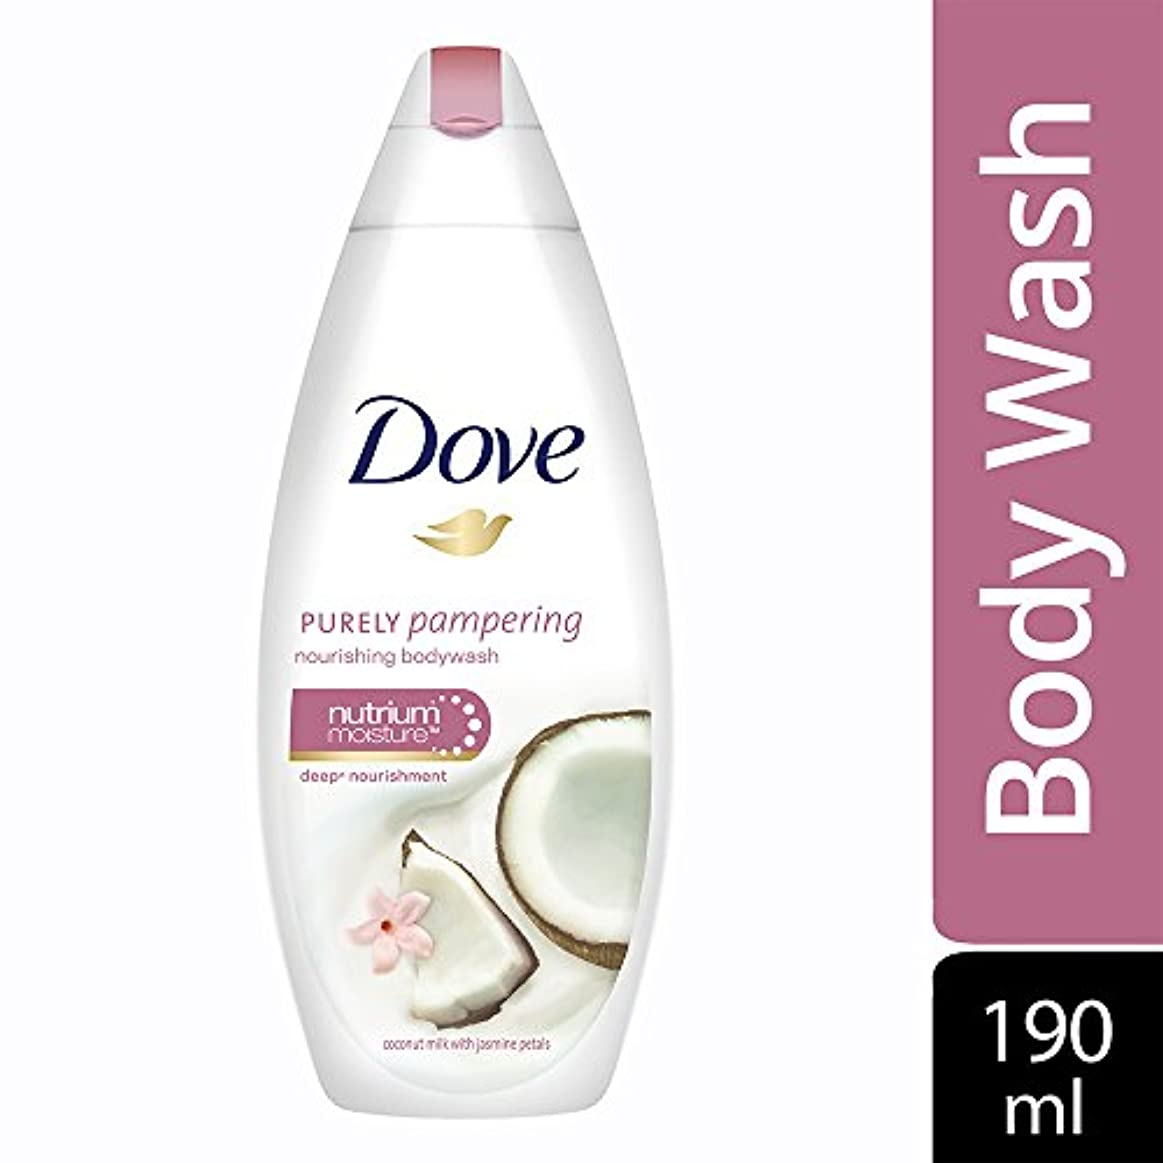 クラックポット強制的操るDove Purely Pampering Coconut Milk and Jas Petals Body Wash, 190ml